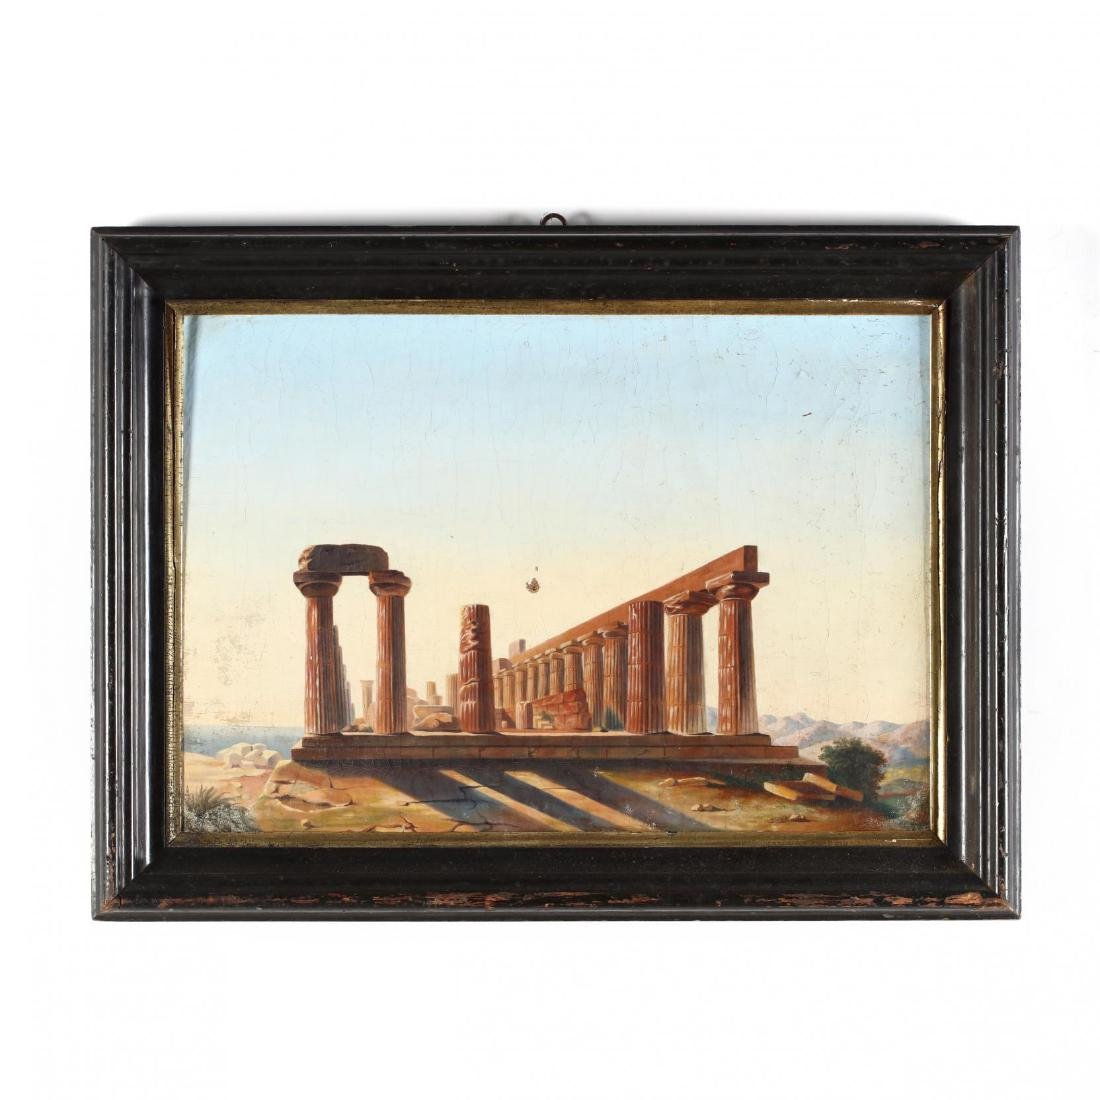 A Grand Tour Painting of the Temple of Hera